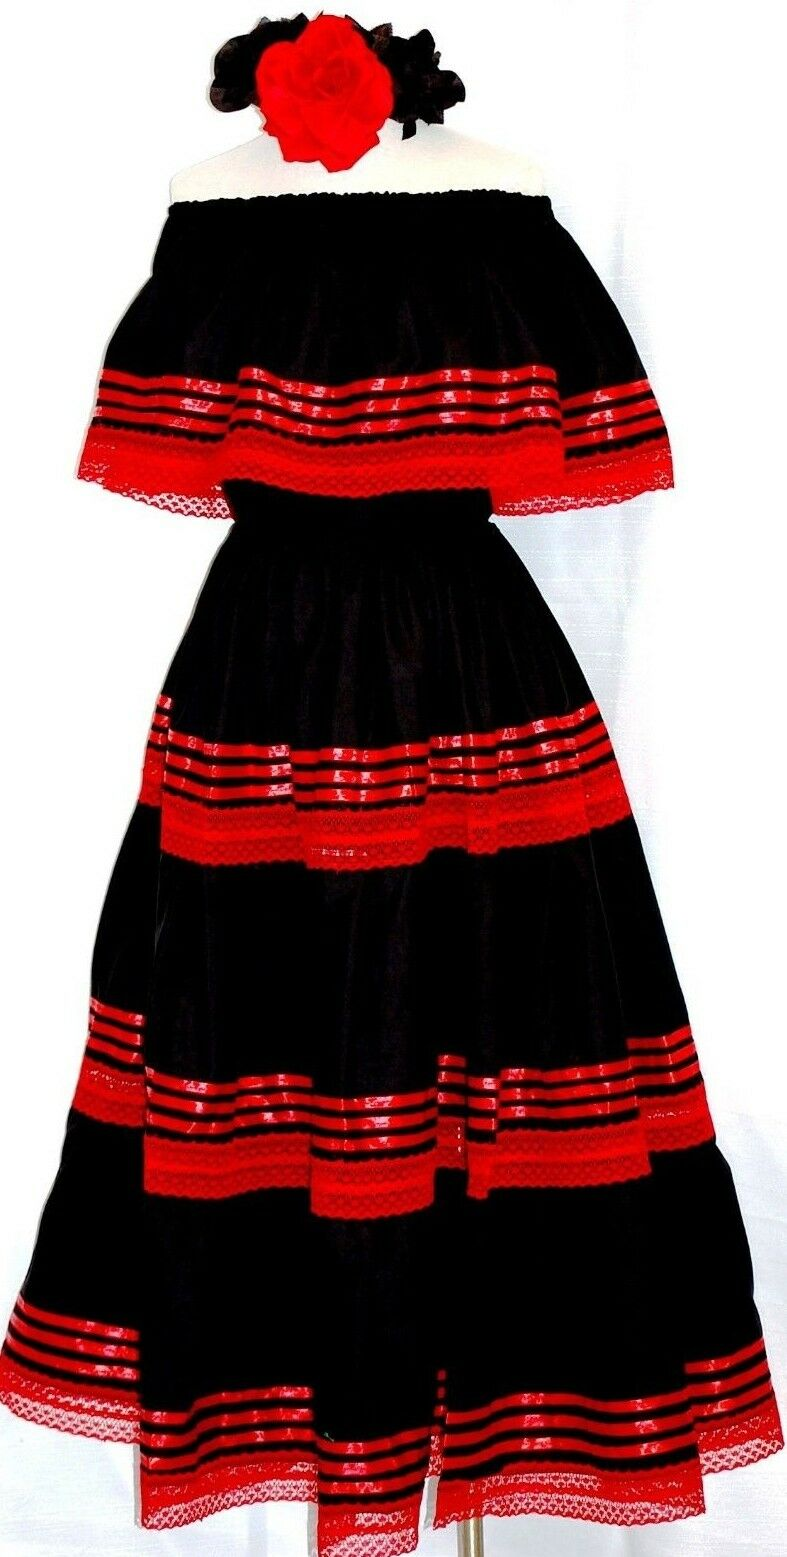 5 de Mayo Mexican schwarz Maxi Dress Ribbons Ruffle Off shoulder 2 pc folklorico